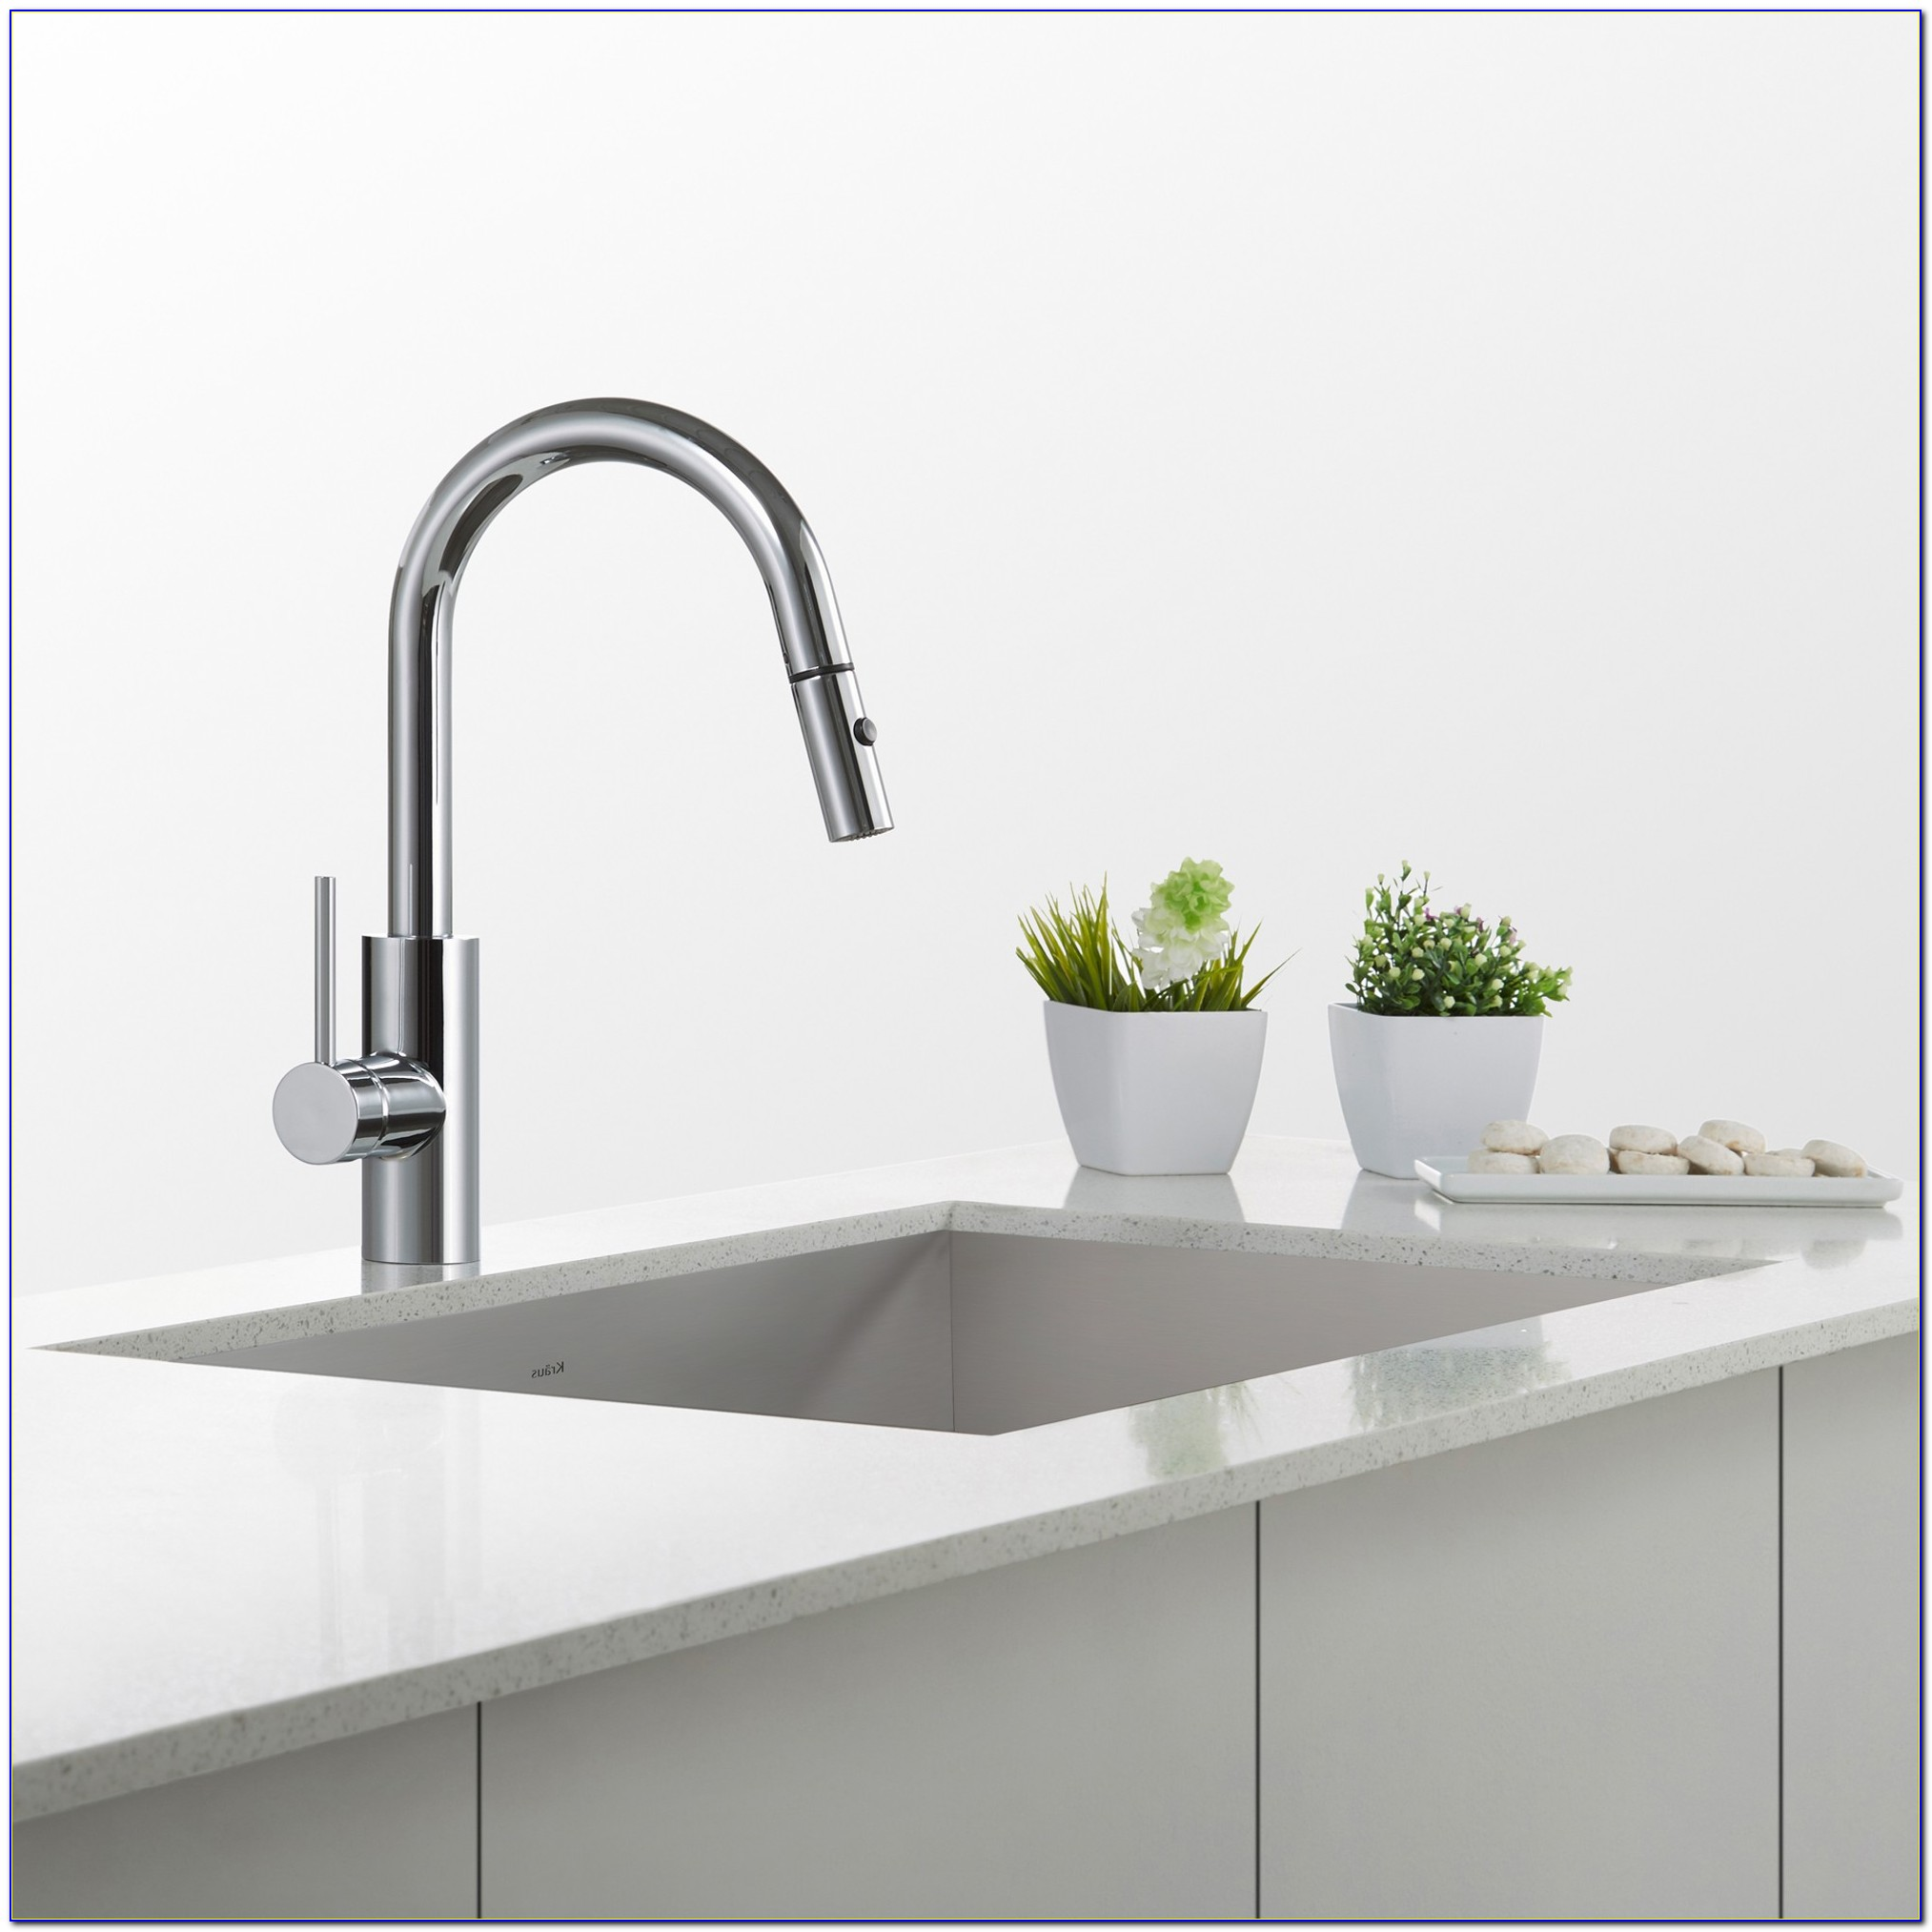 Pictures Of Kitchen Sinks With Bronze Faucets